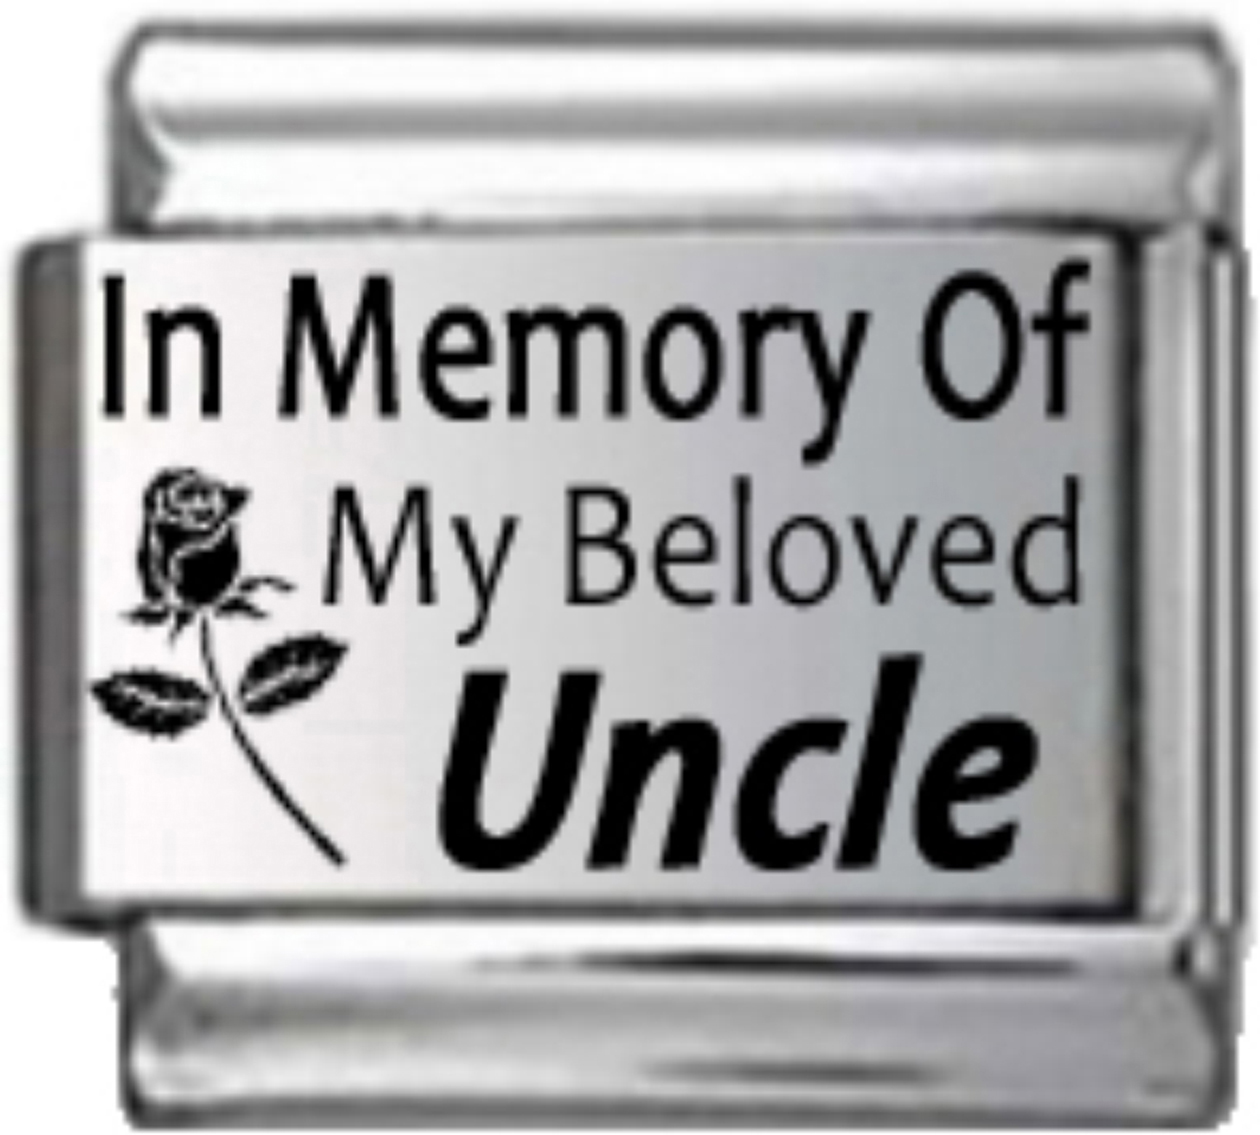 IM071-In-Memory-of-Uncle